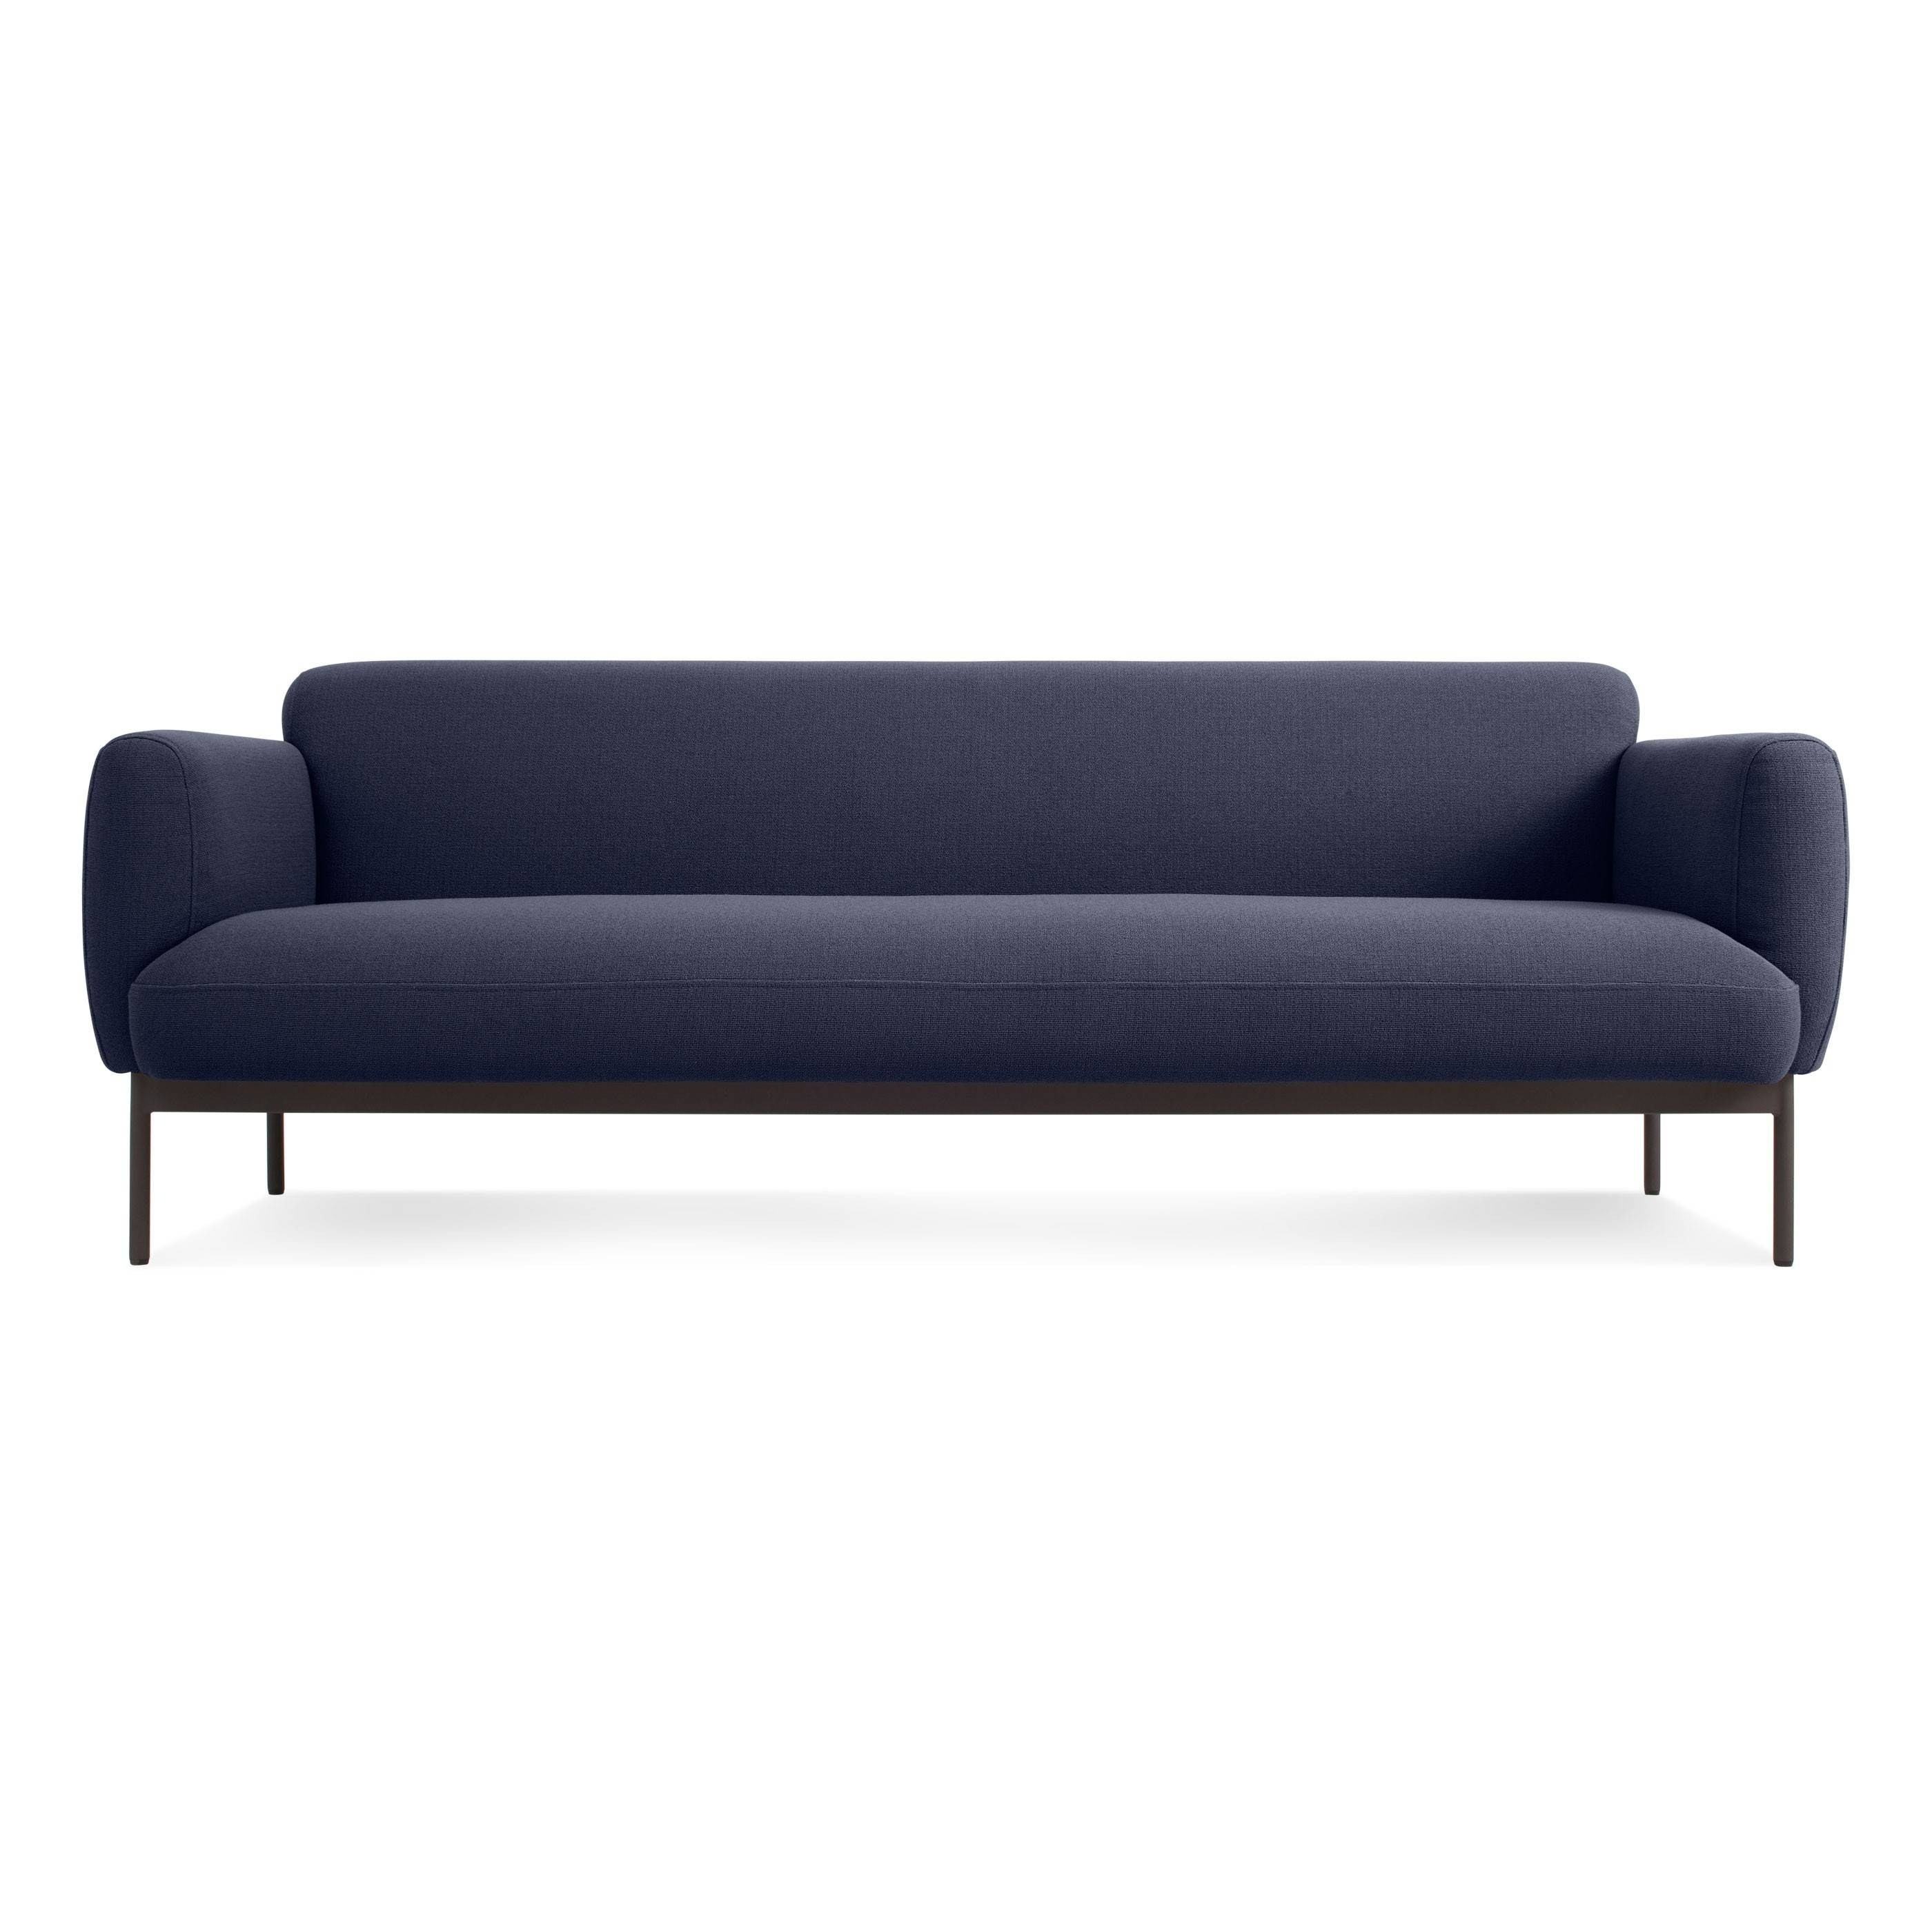 Sofa : View Contemporary Sofa Beds Design Decorating Ideas Pertaining To Cool Sofa Beds (View 23 of 30)